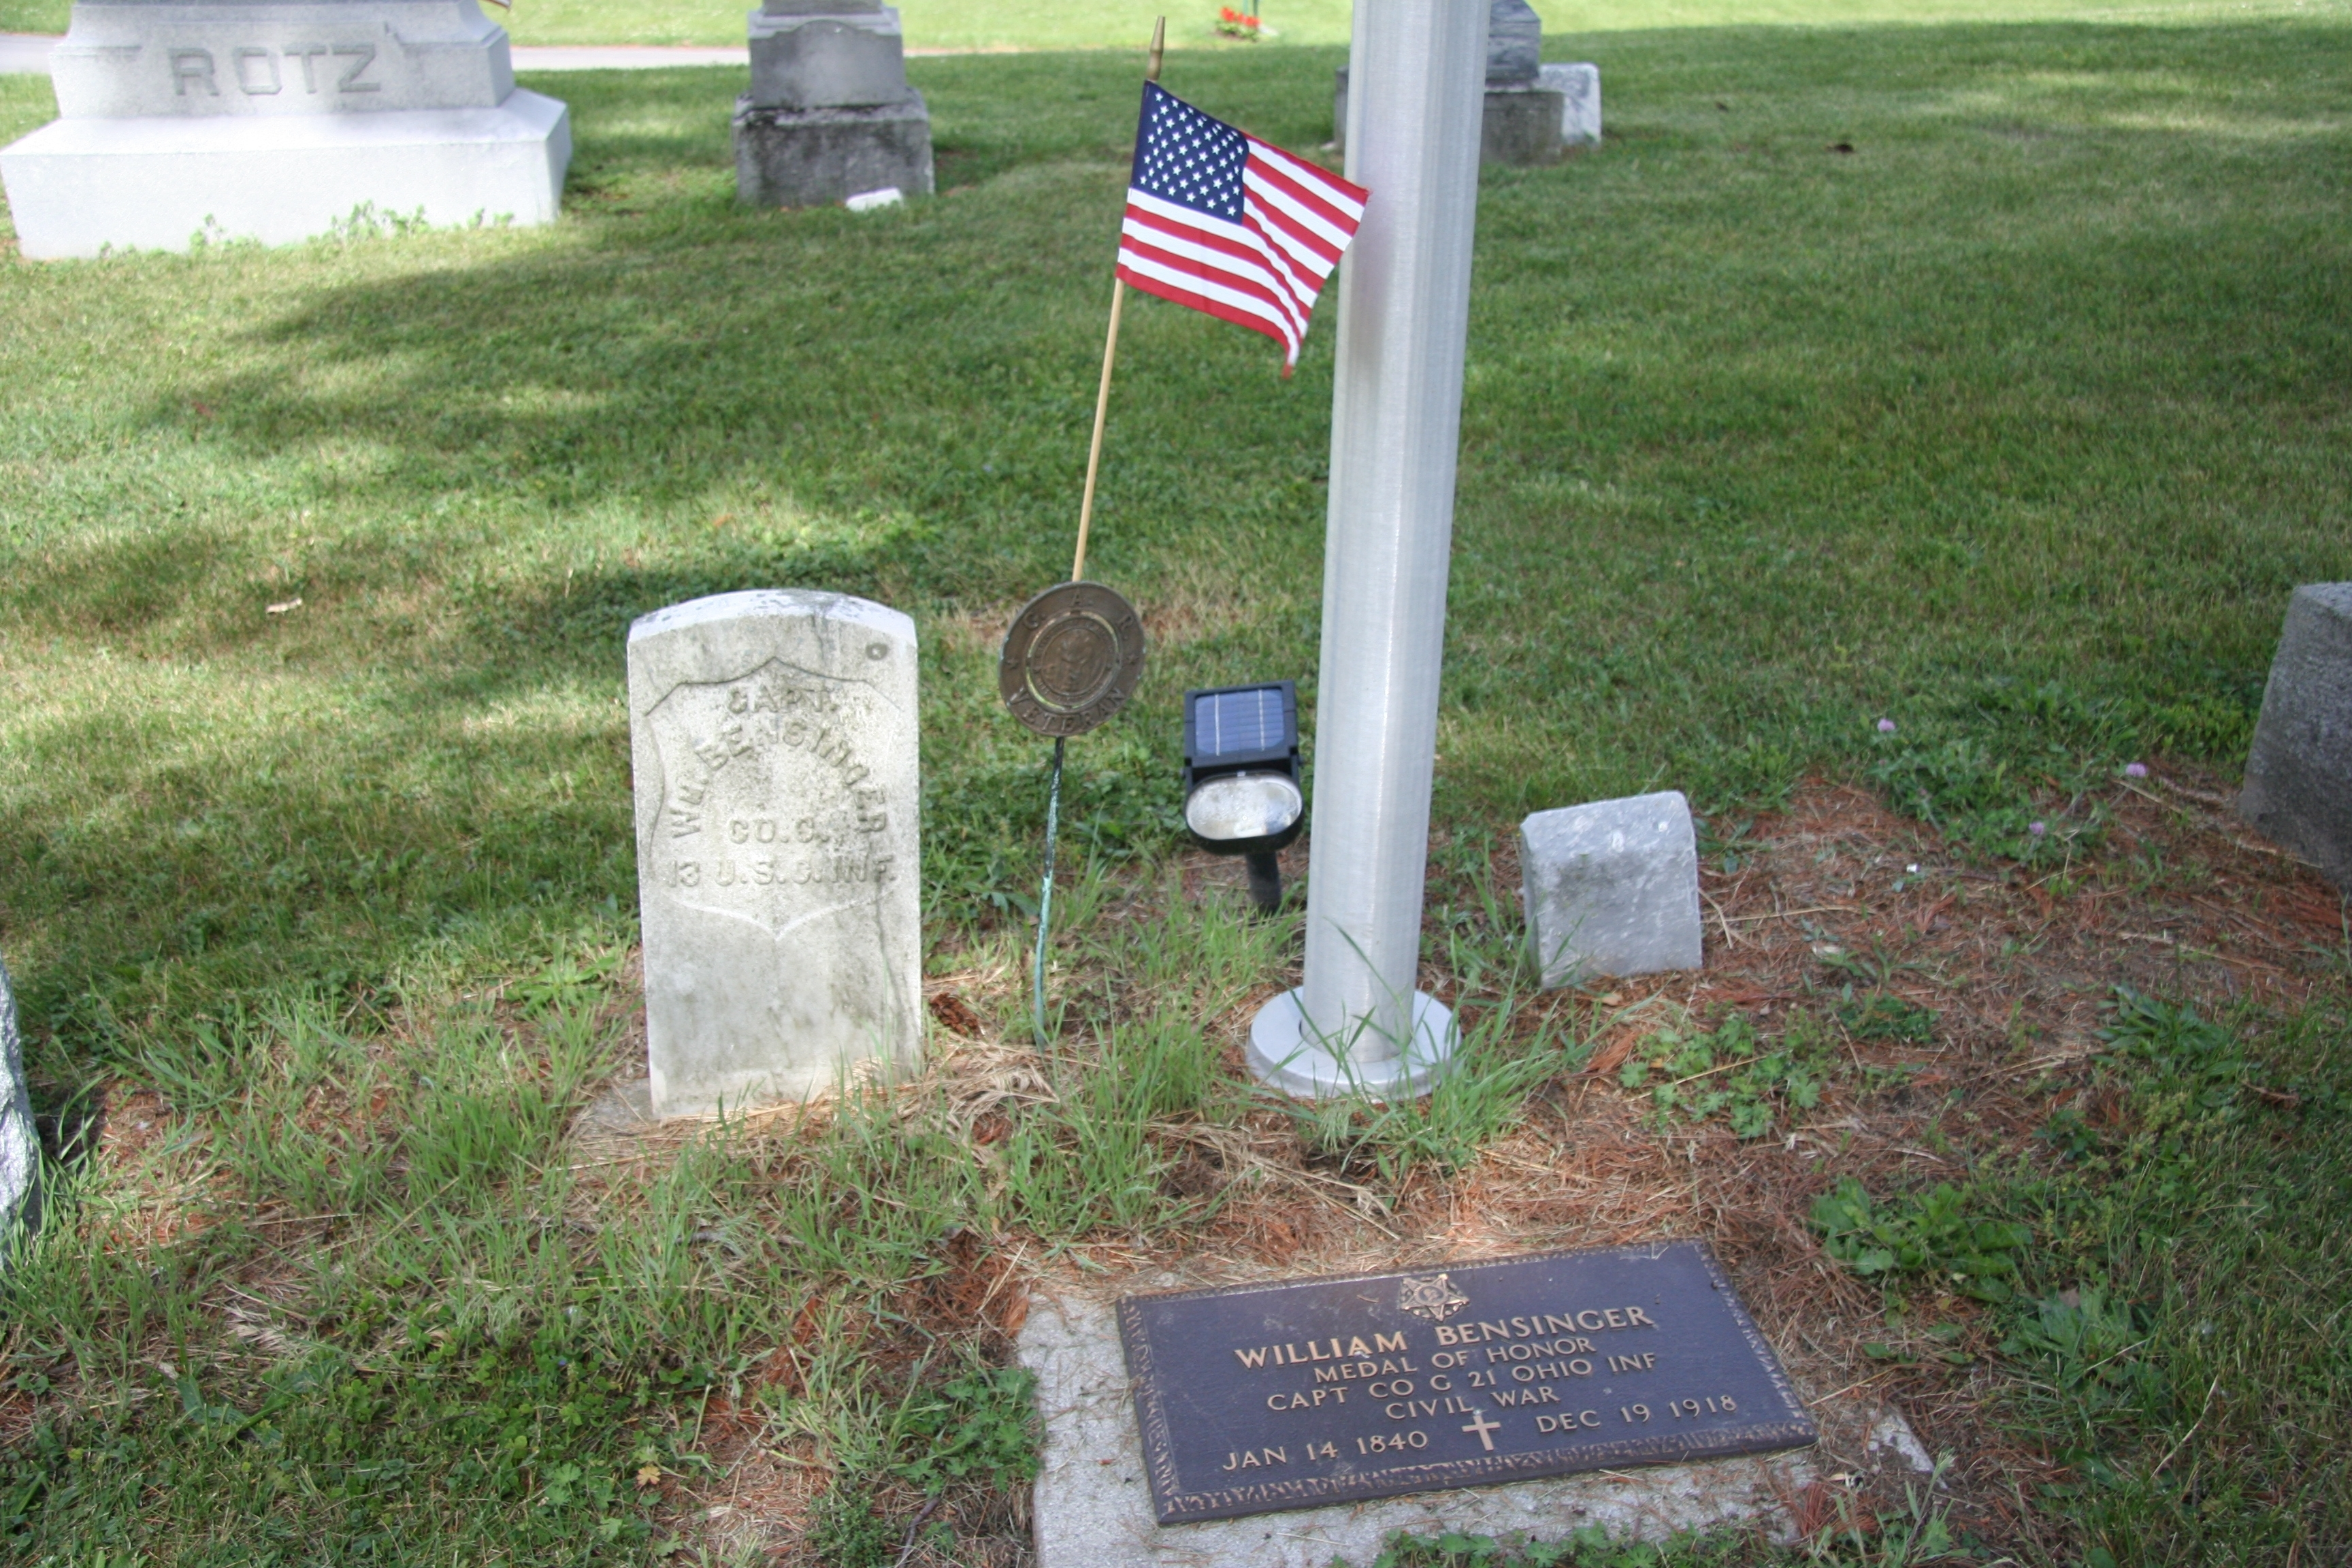 William Bensinger Grave